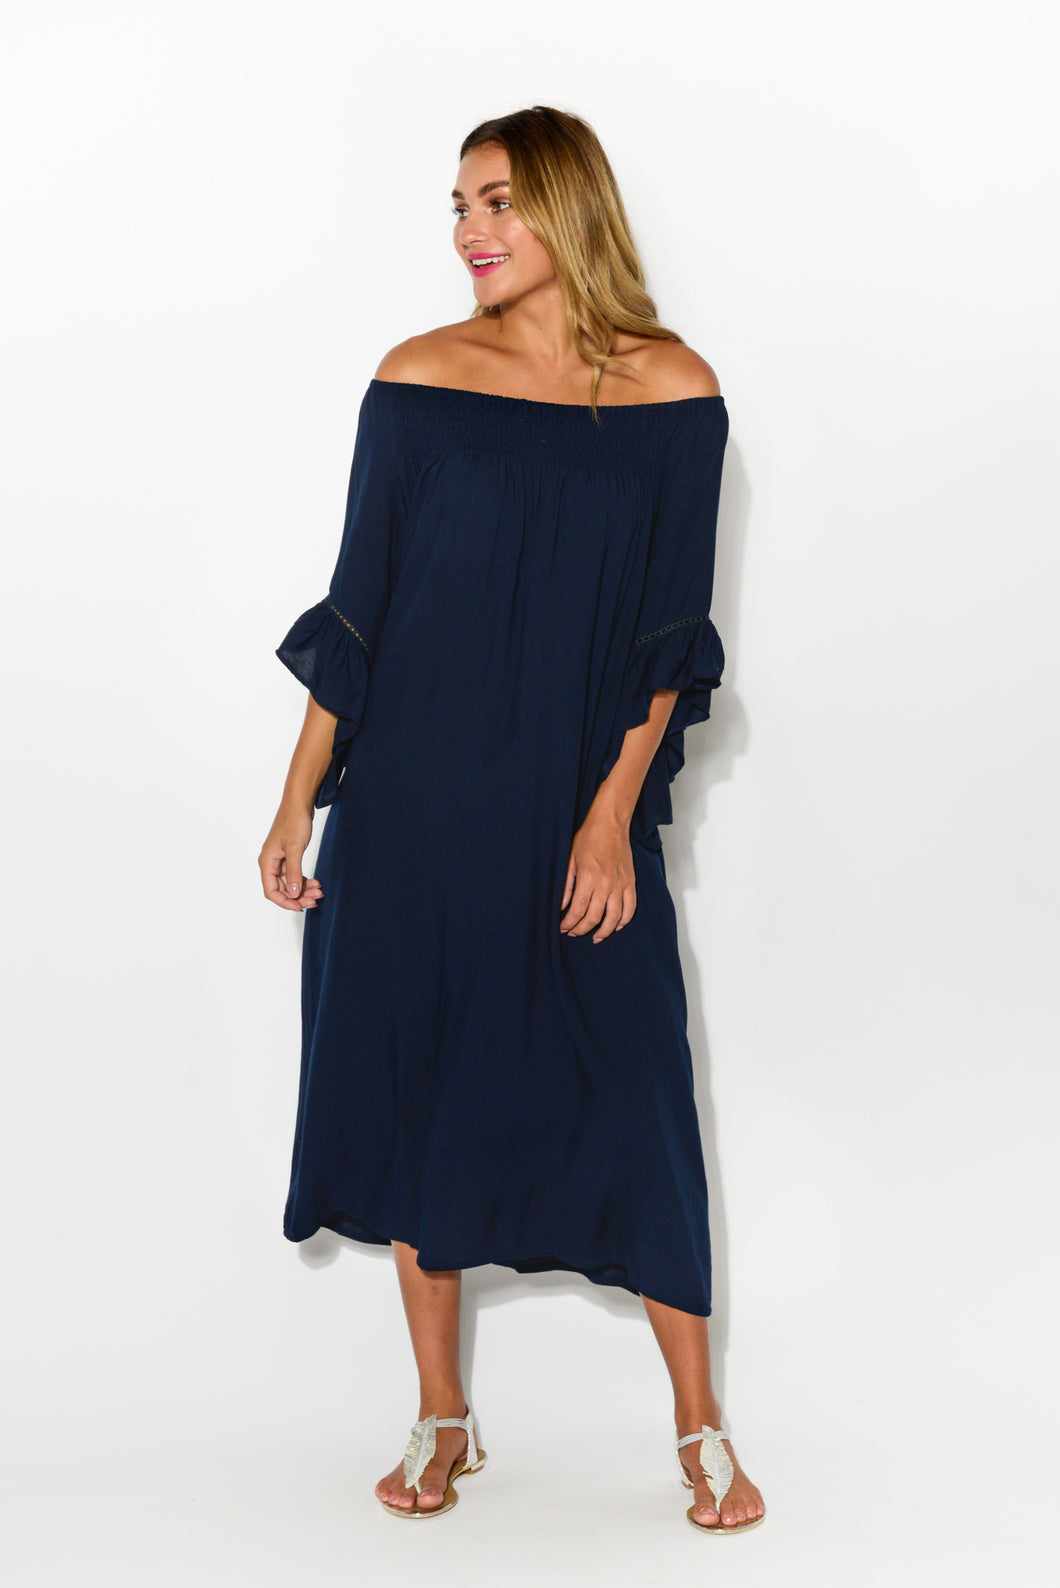 Amanda Navy Maxi Dress - Blue Bungalow